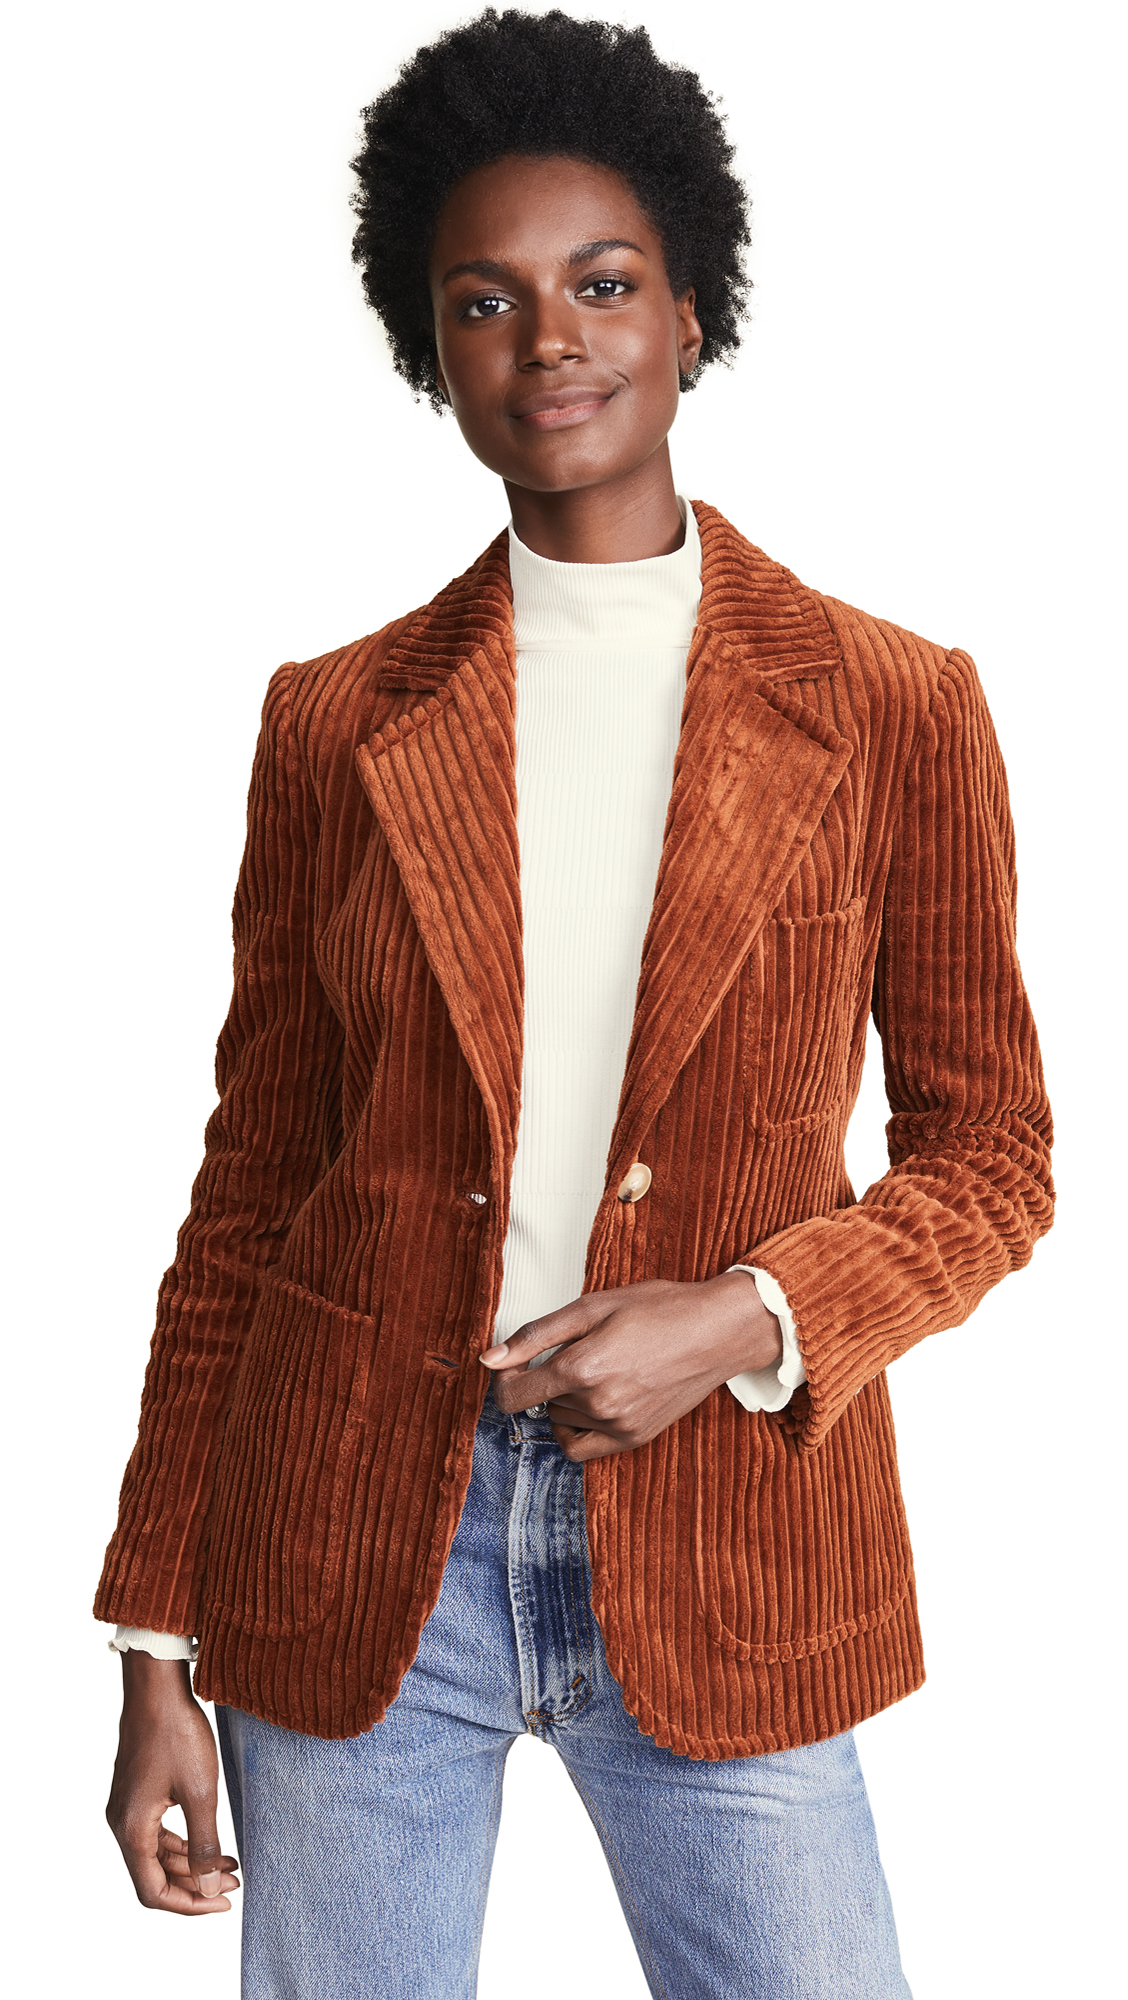 Tory Burch Polly Blazer - Autumn Rust/Autumn Rust